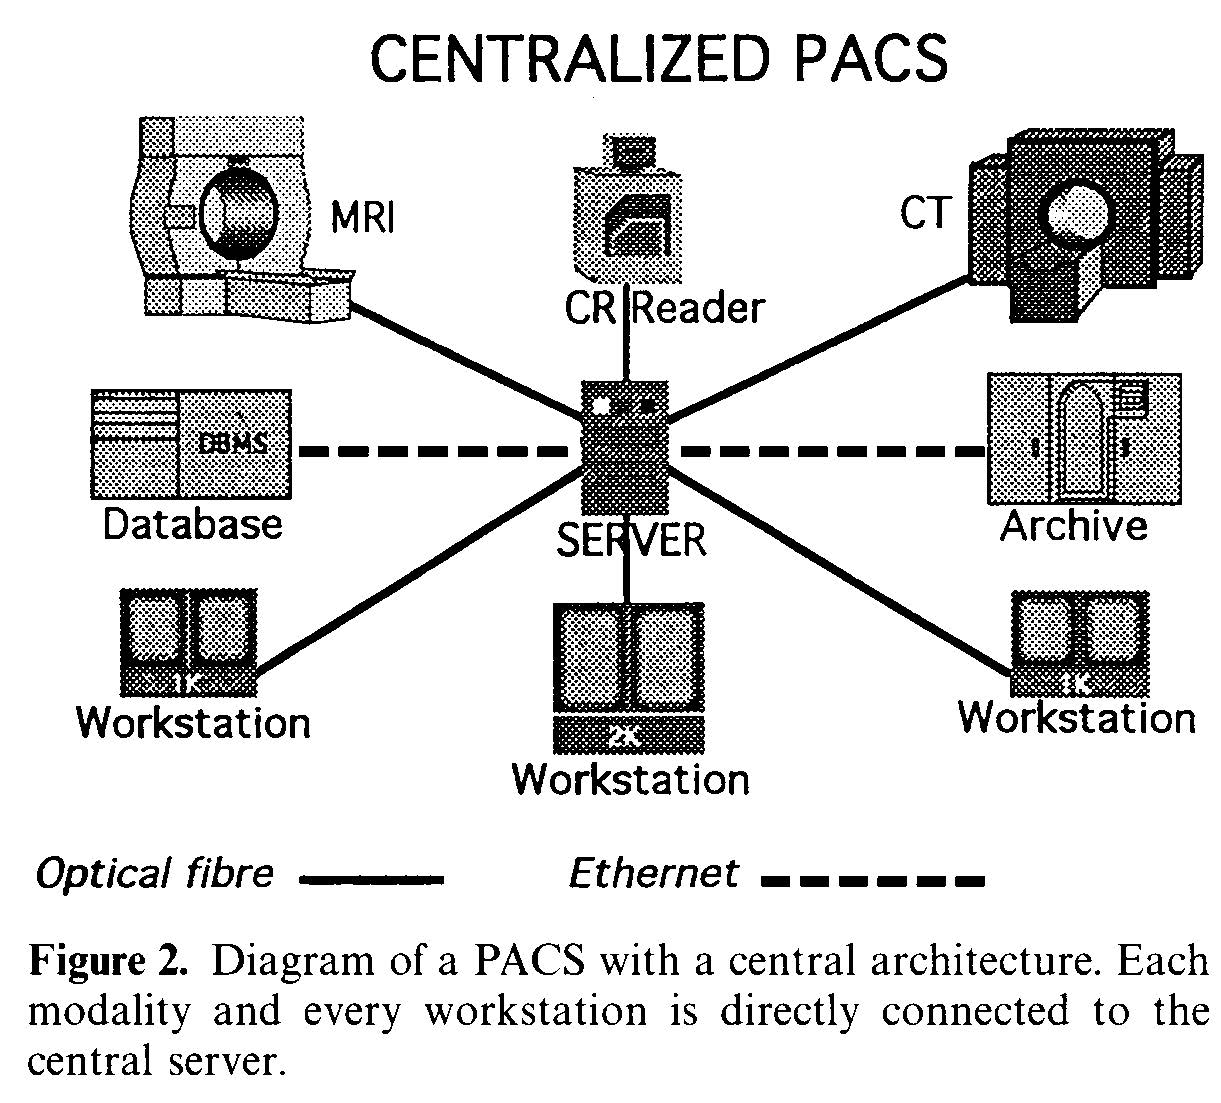 PACS with a central architecture